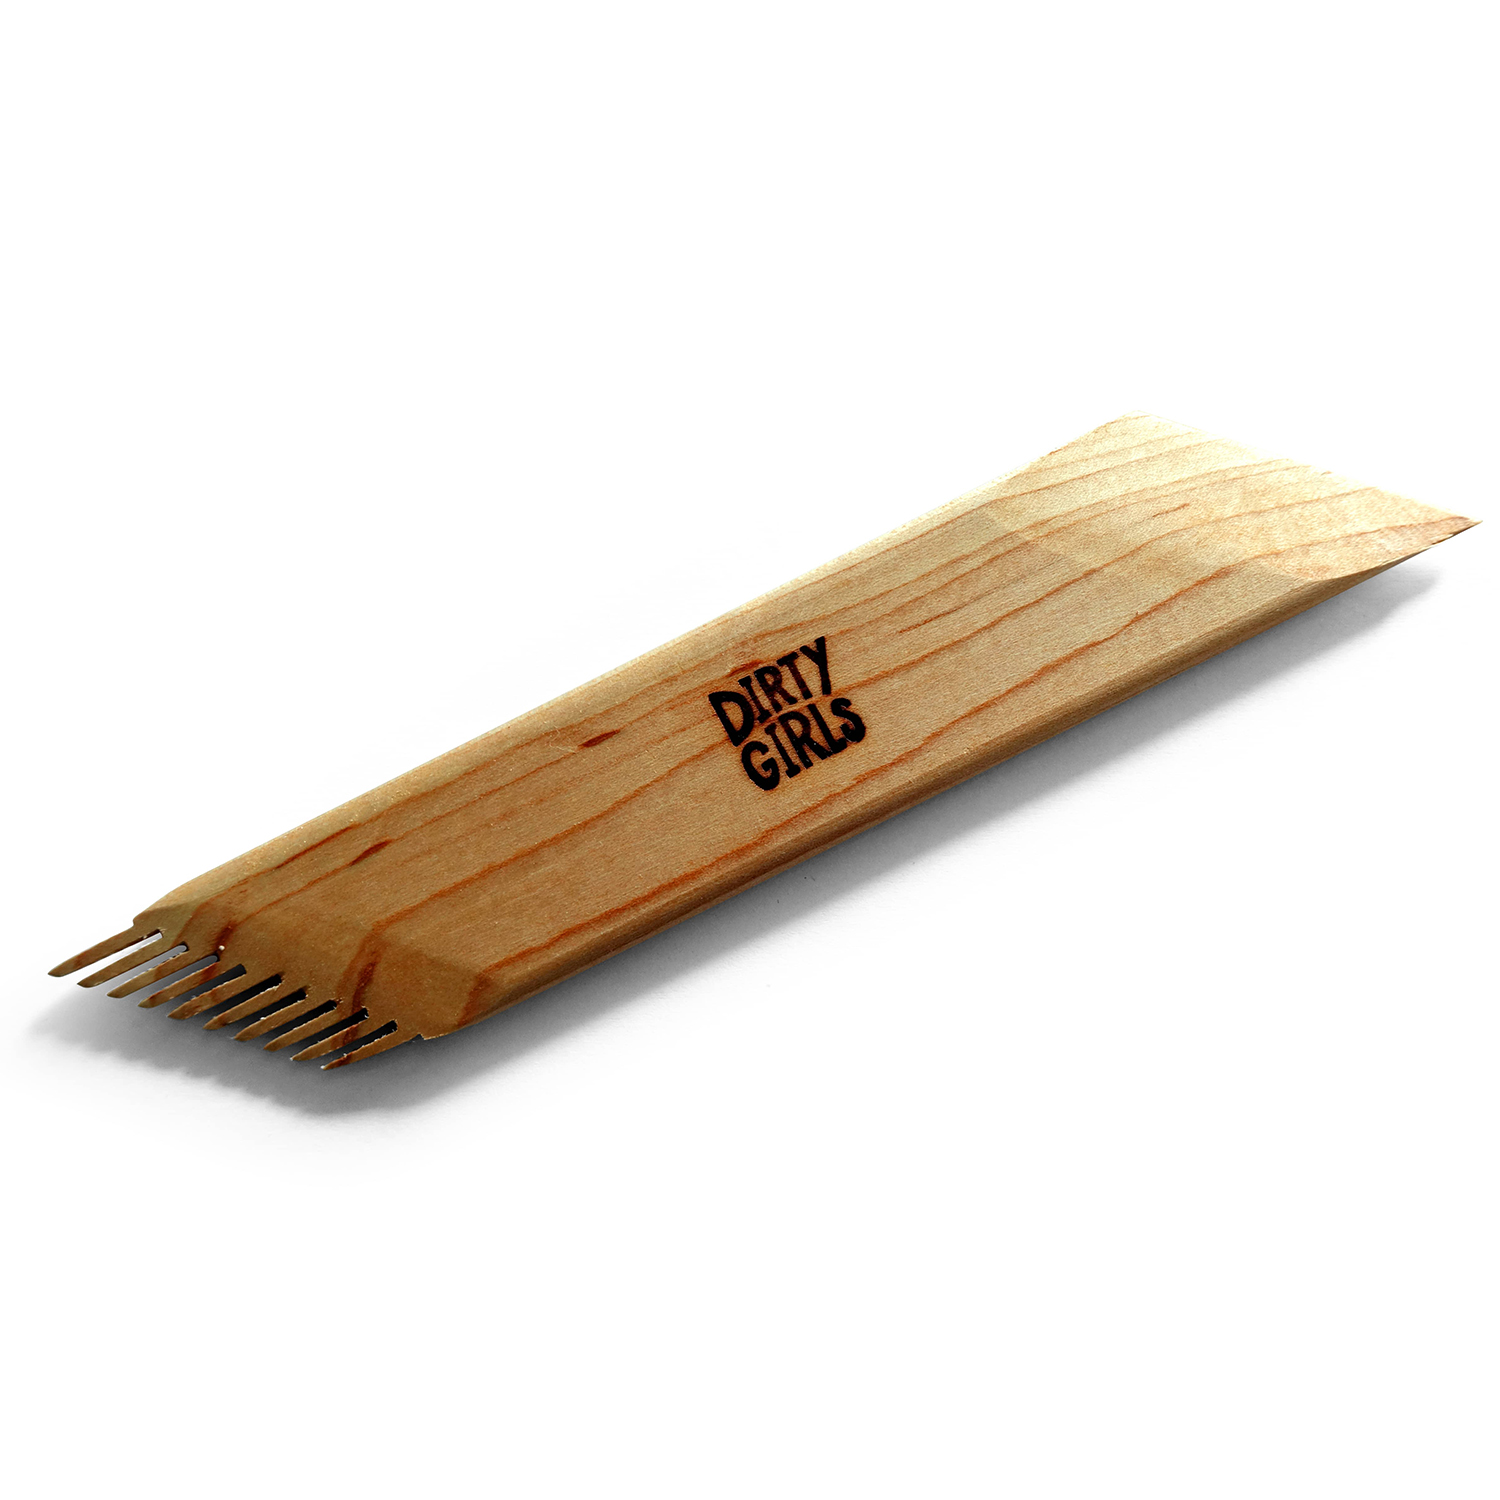 Dirty Girls Pottery Tools 45° Angled Comb Wooden Tool 1